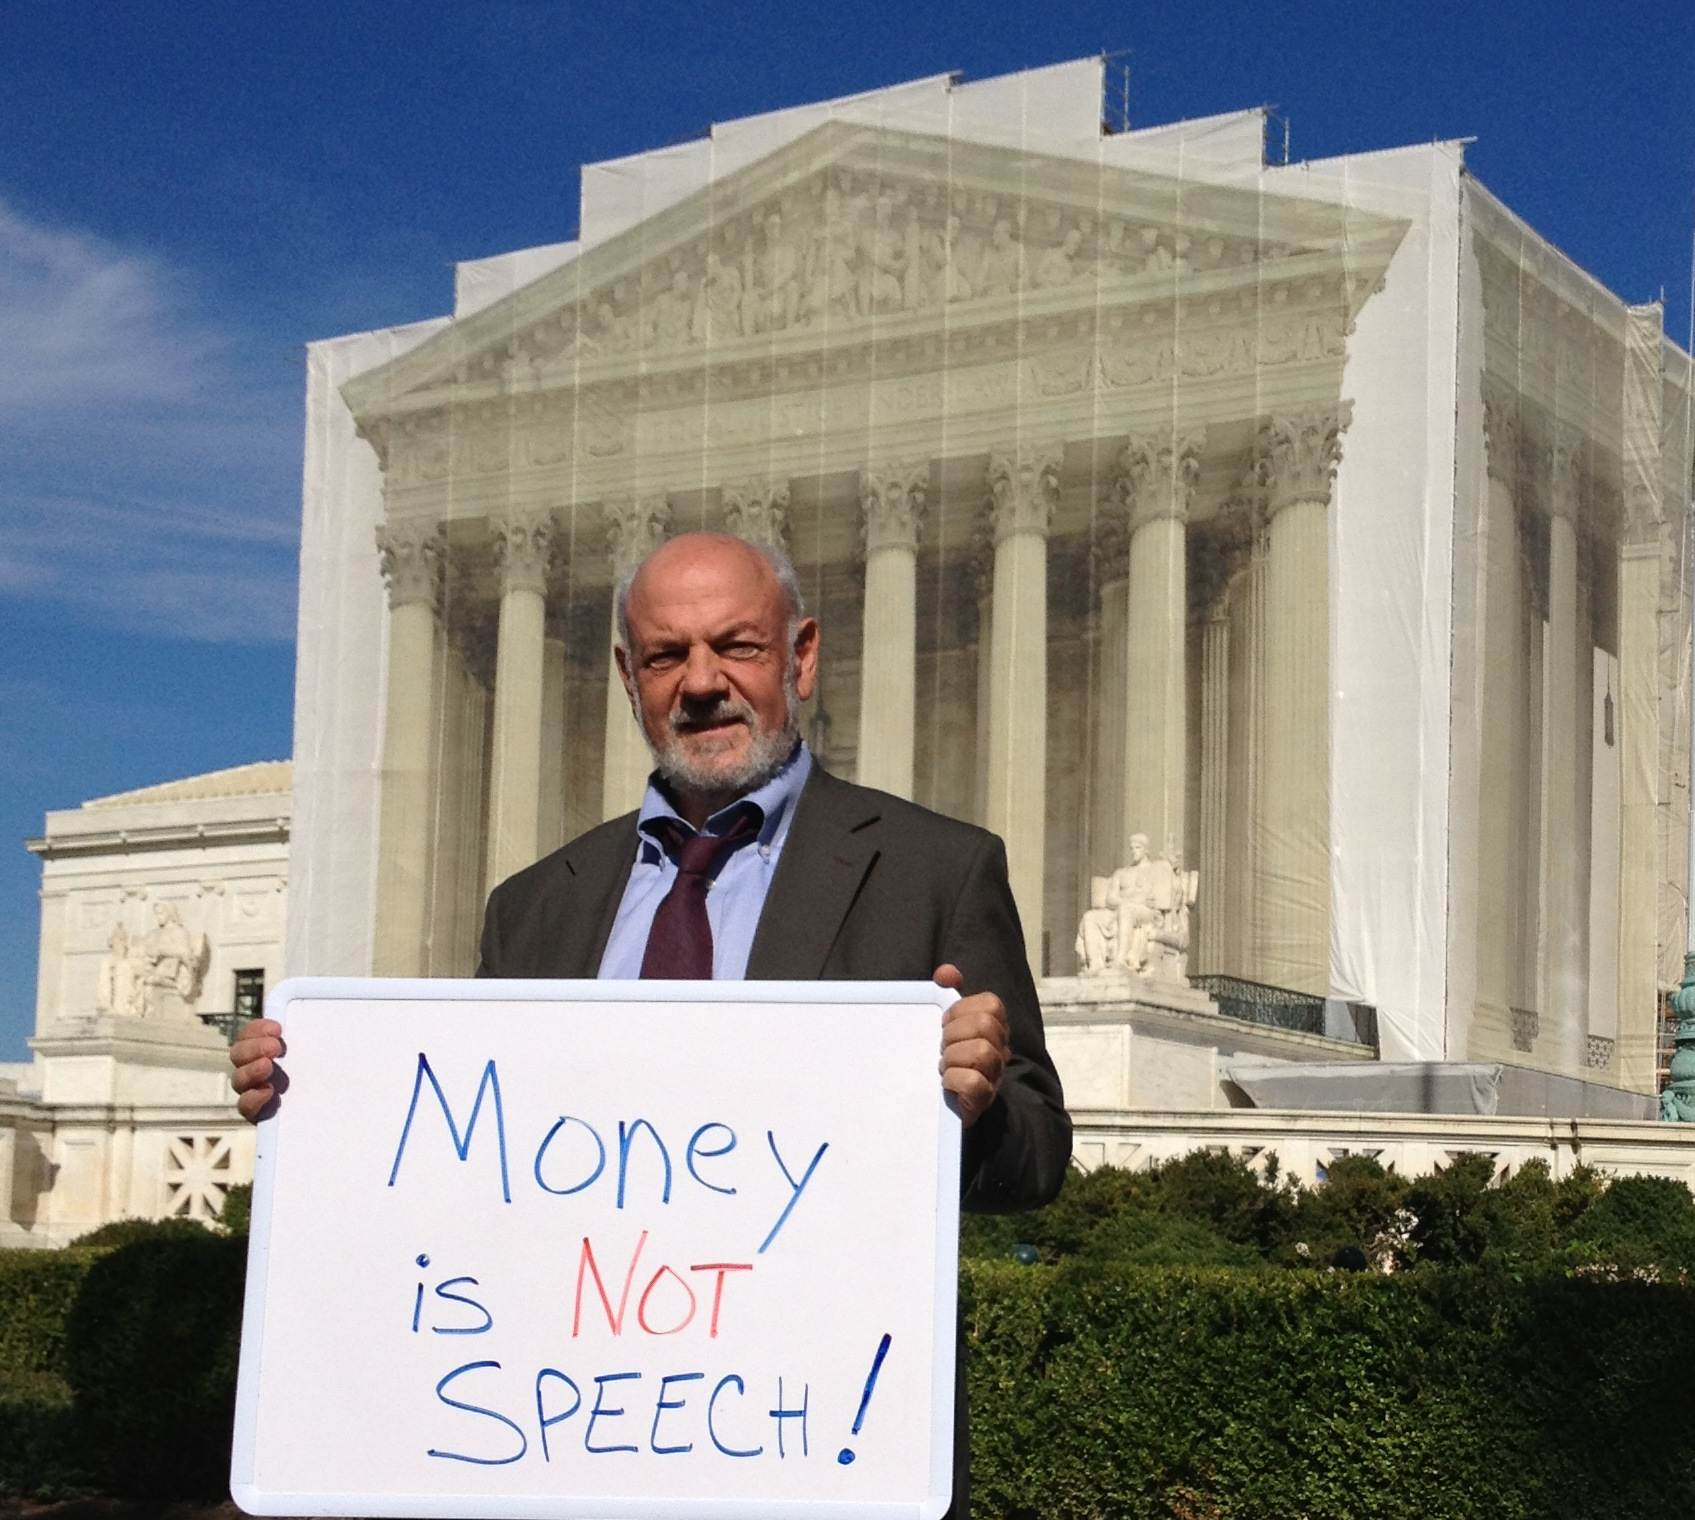 Ken_at_SCOTUS_Money_is_not_speech.jpg